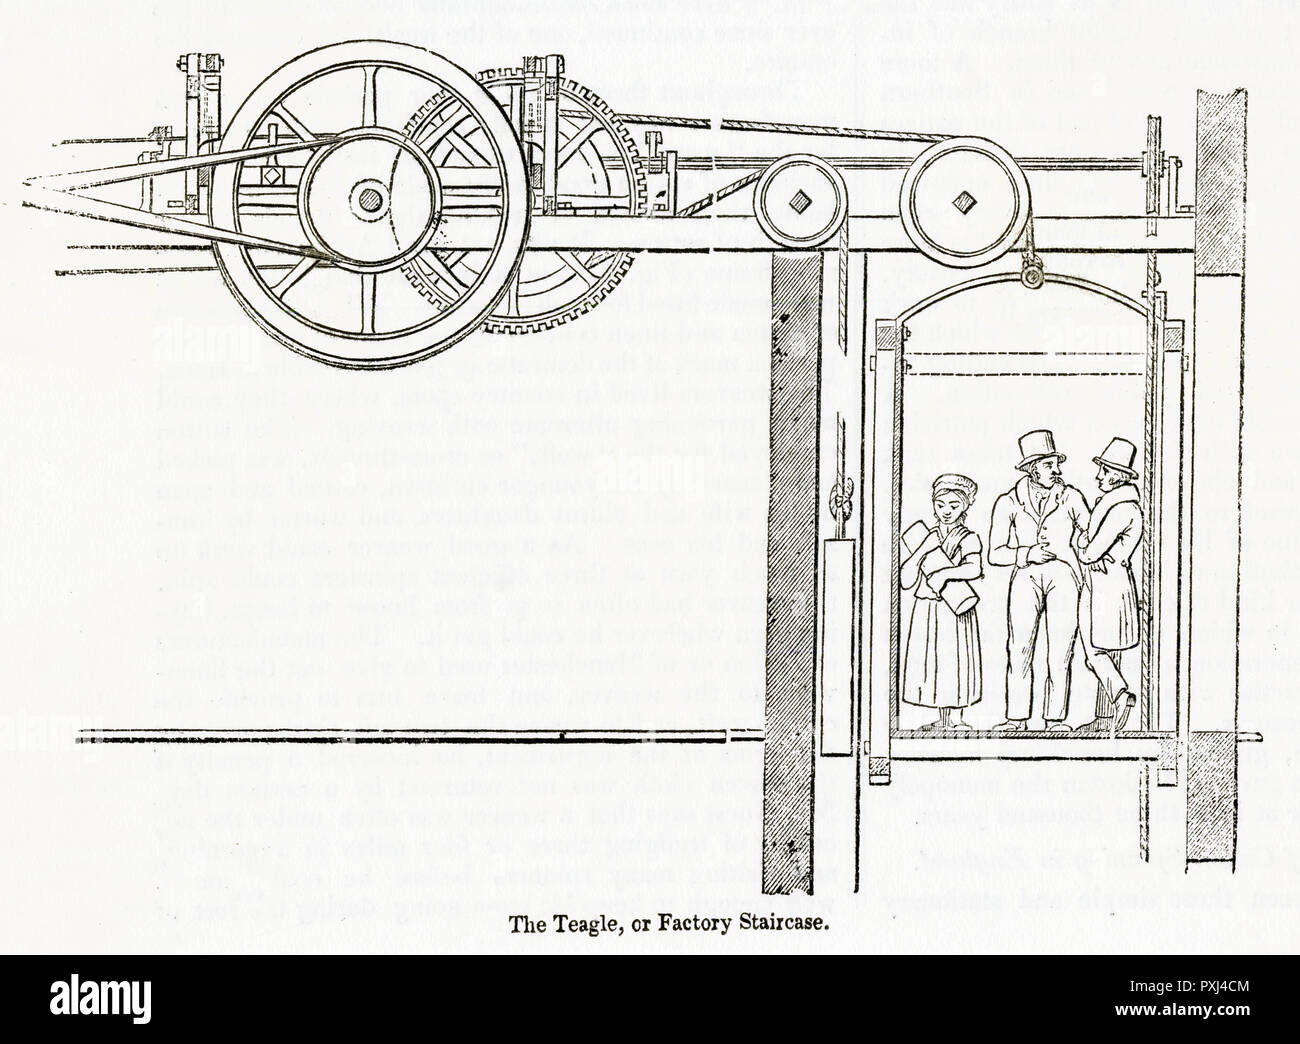 A 'teagle' used in the cotton mills of Lancashire to facilitate passage from one level to another      Date: circa 1850 - Stock Image